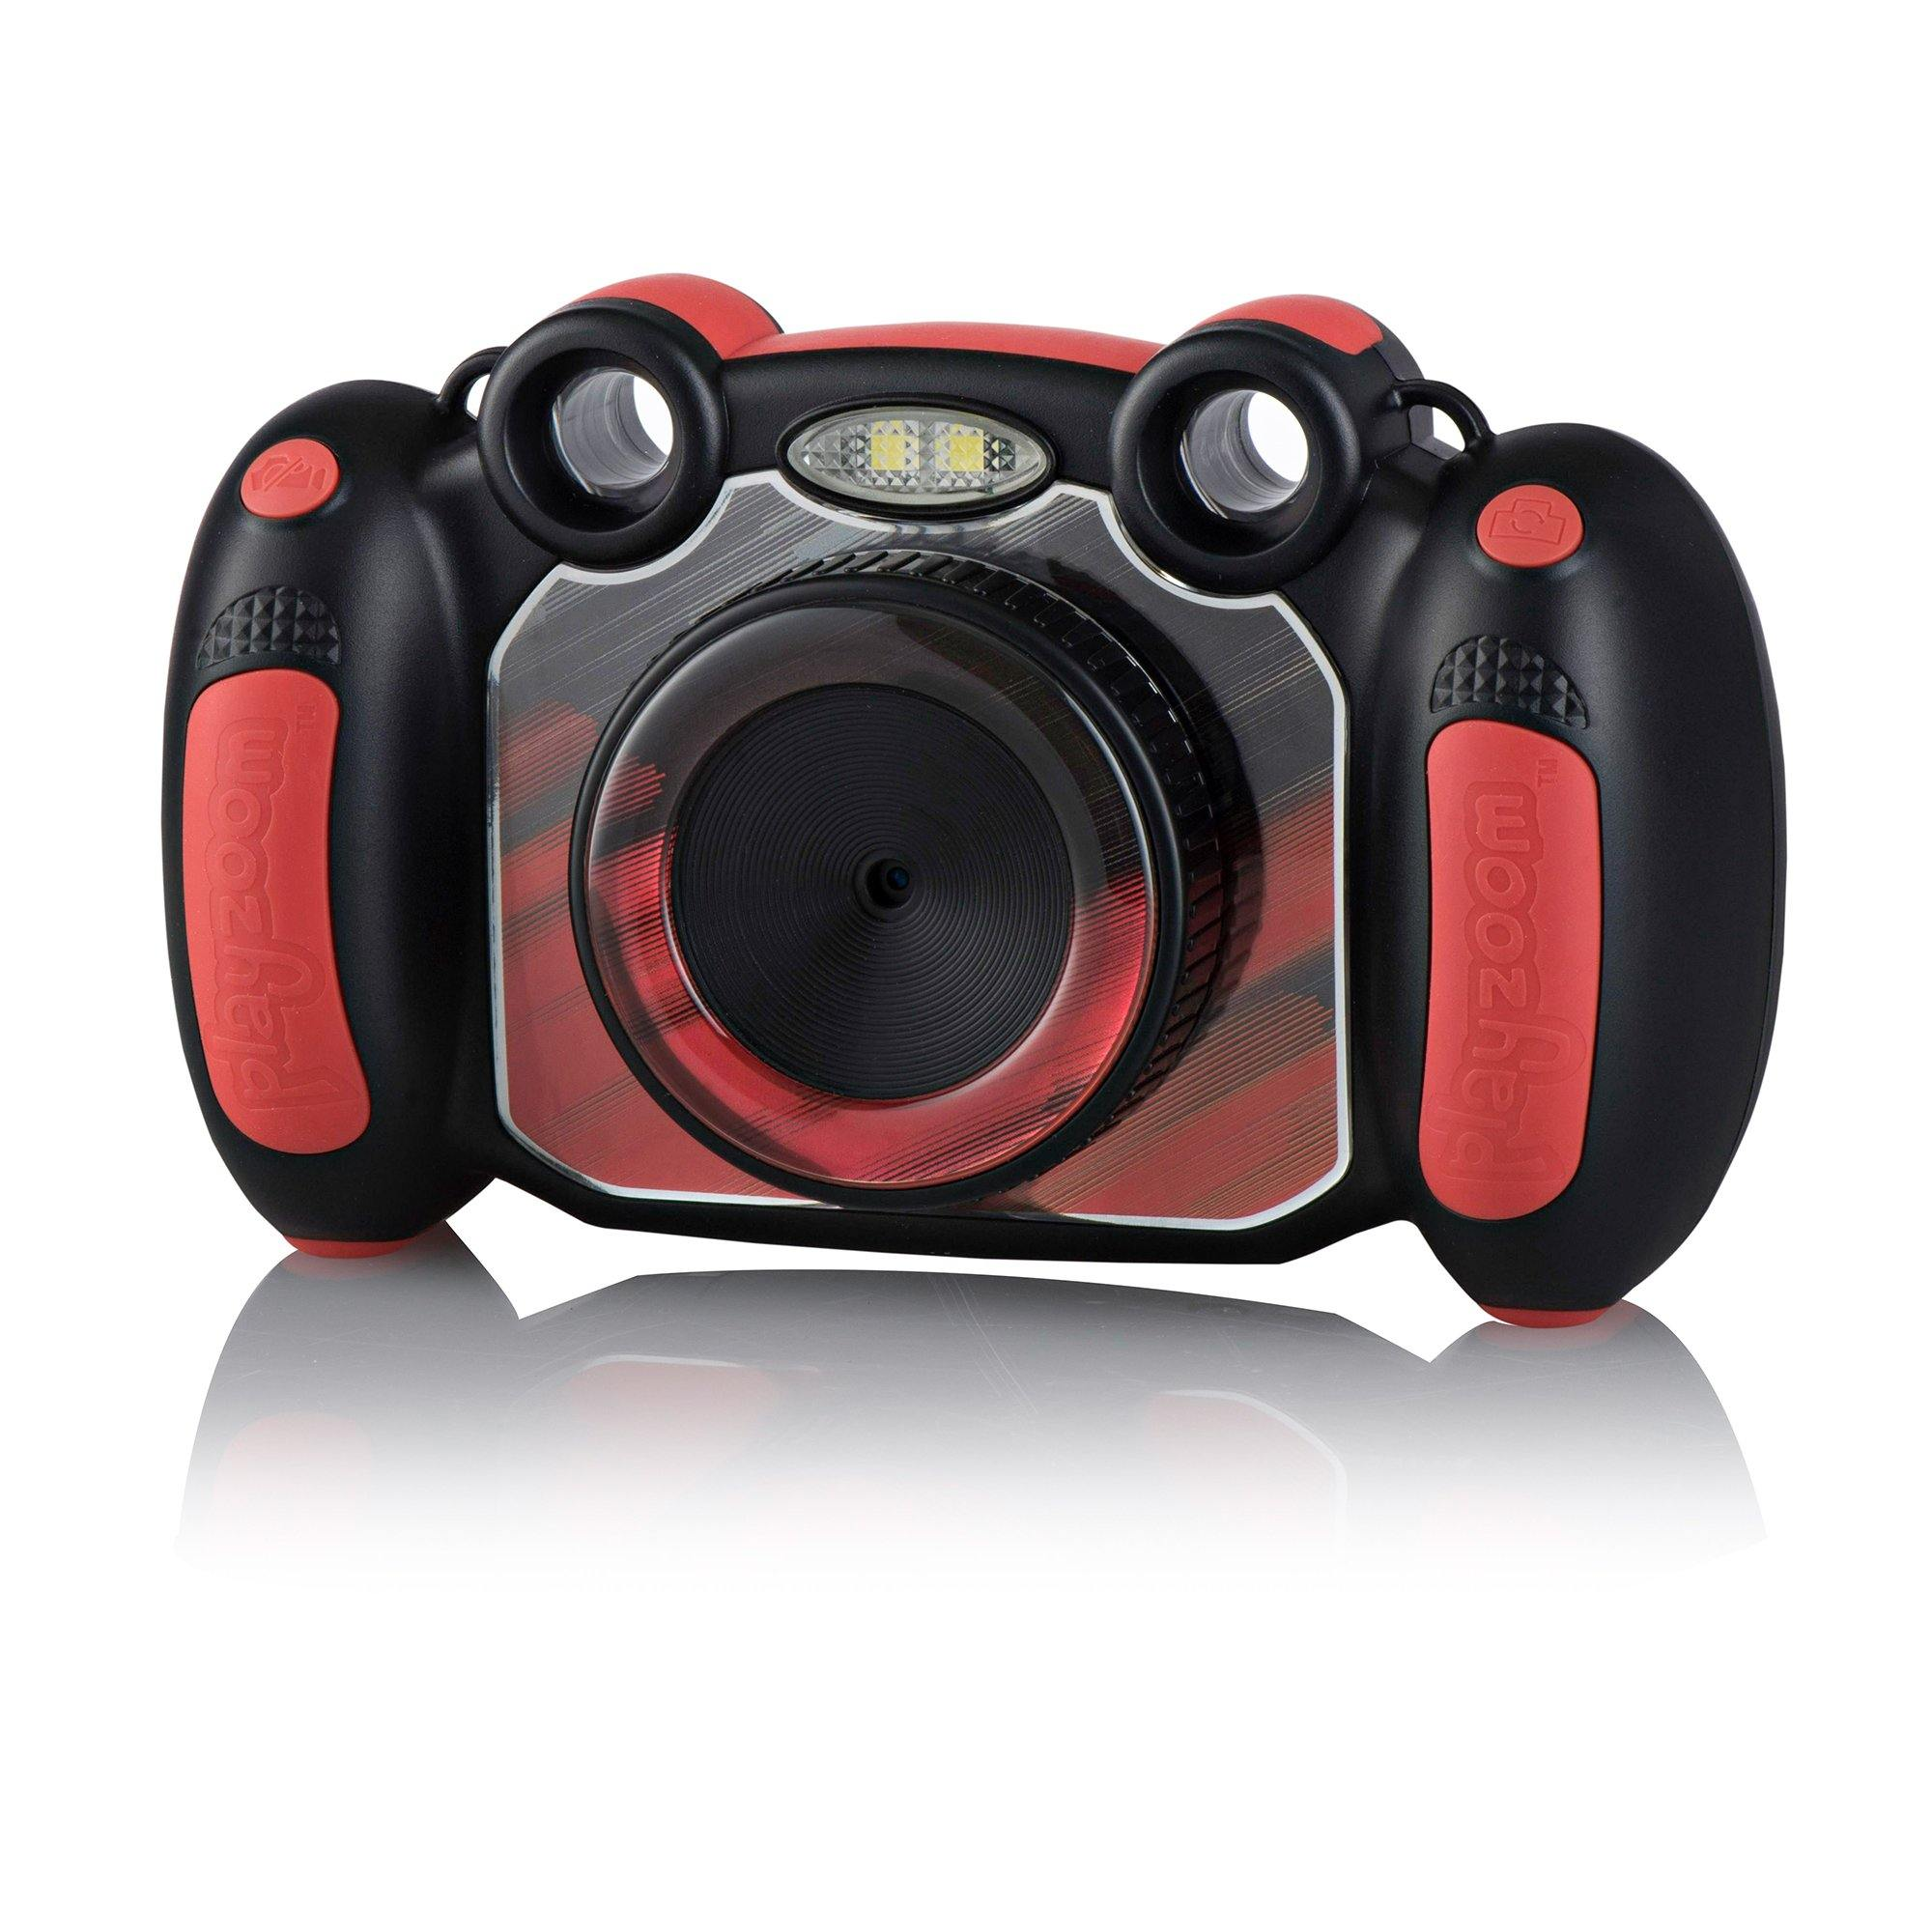 Playzoom Snapcam Duo, Black/Red